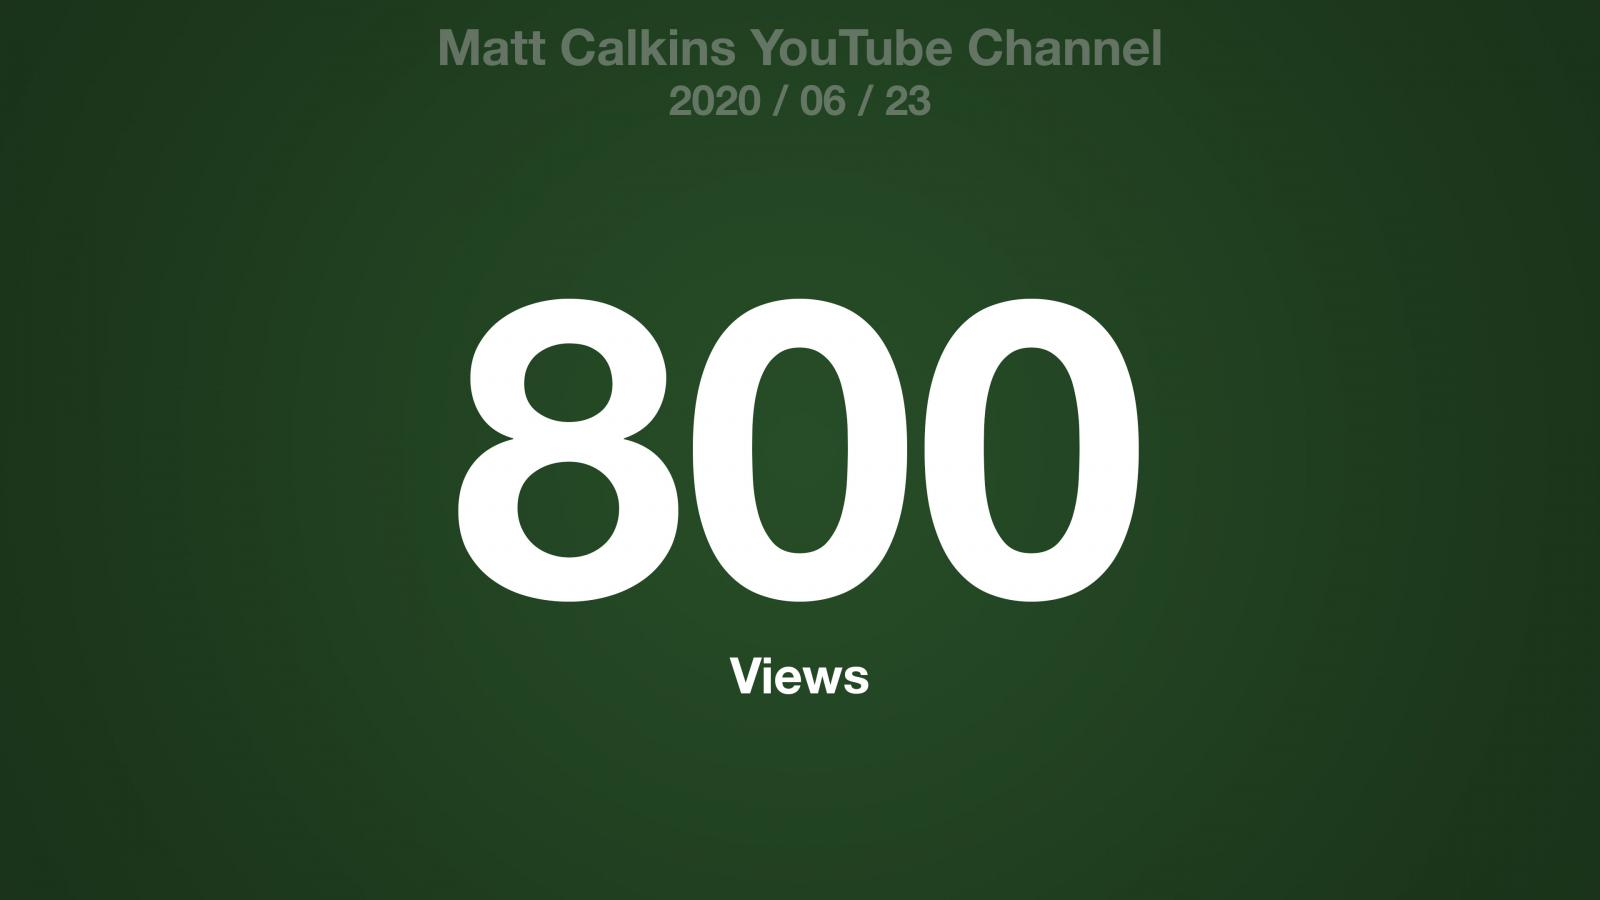 Matt Calkins YouTube Channel, 2020/06/23, 800 Views